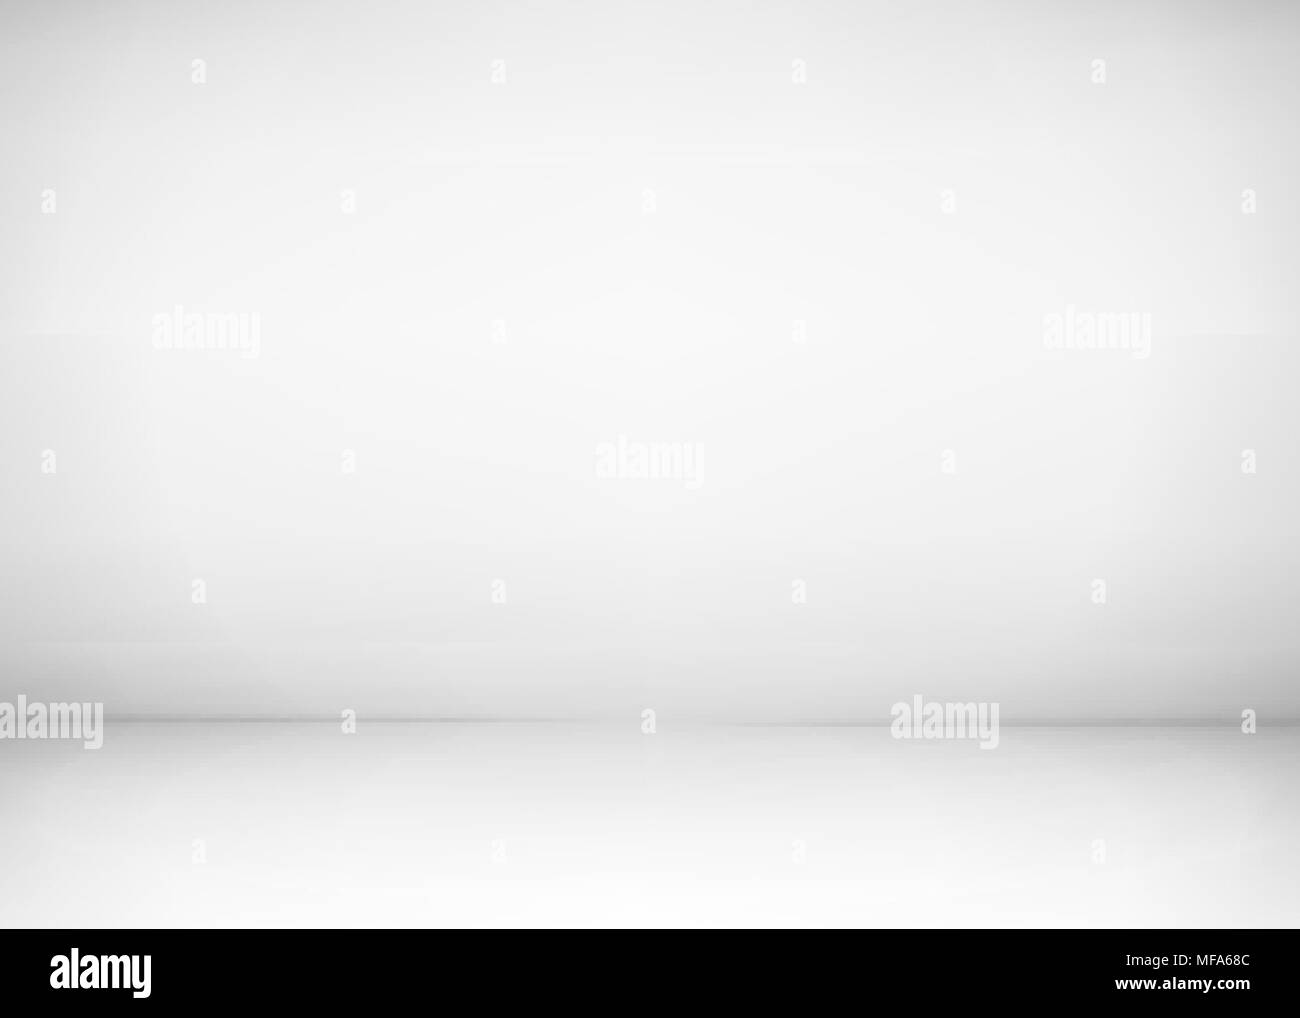 Empty Studio Room Interior White Wall And Floor Background Clean Workshop For Photography Or Presentation Vector Illustration